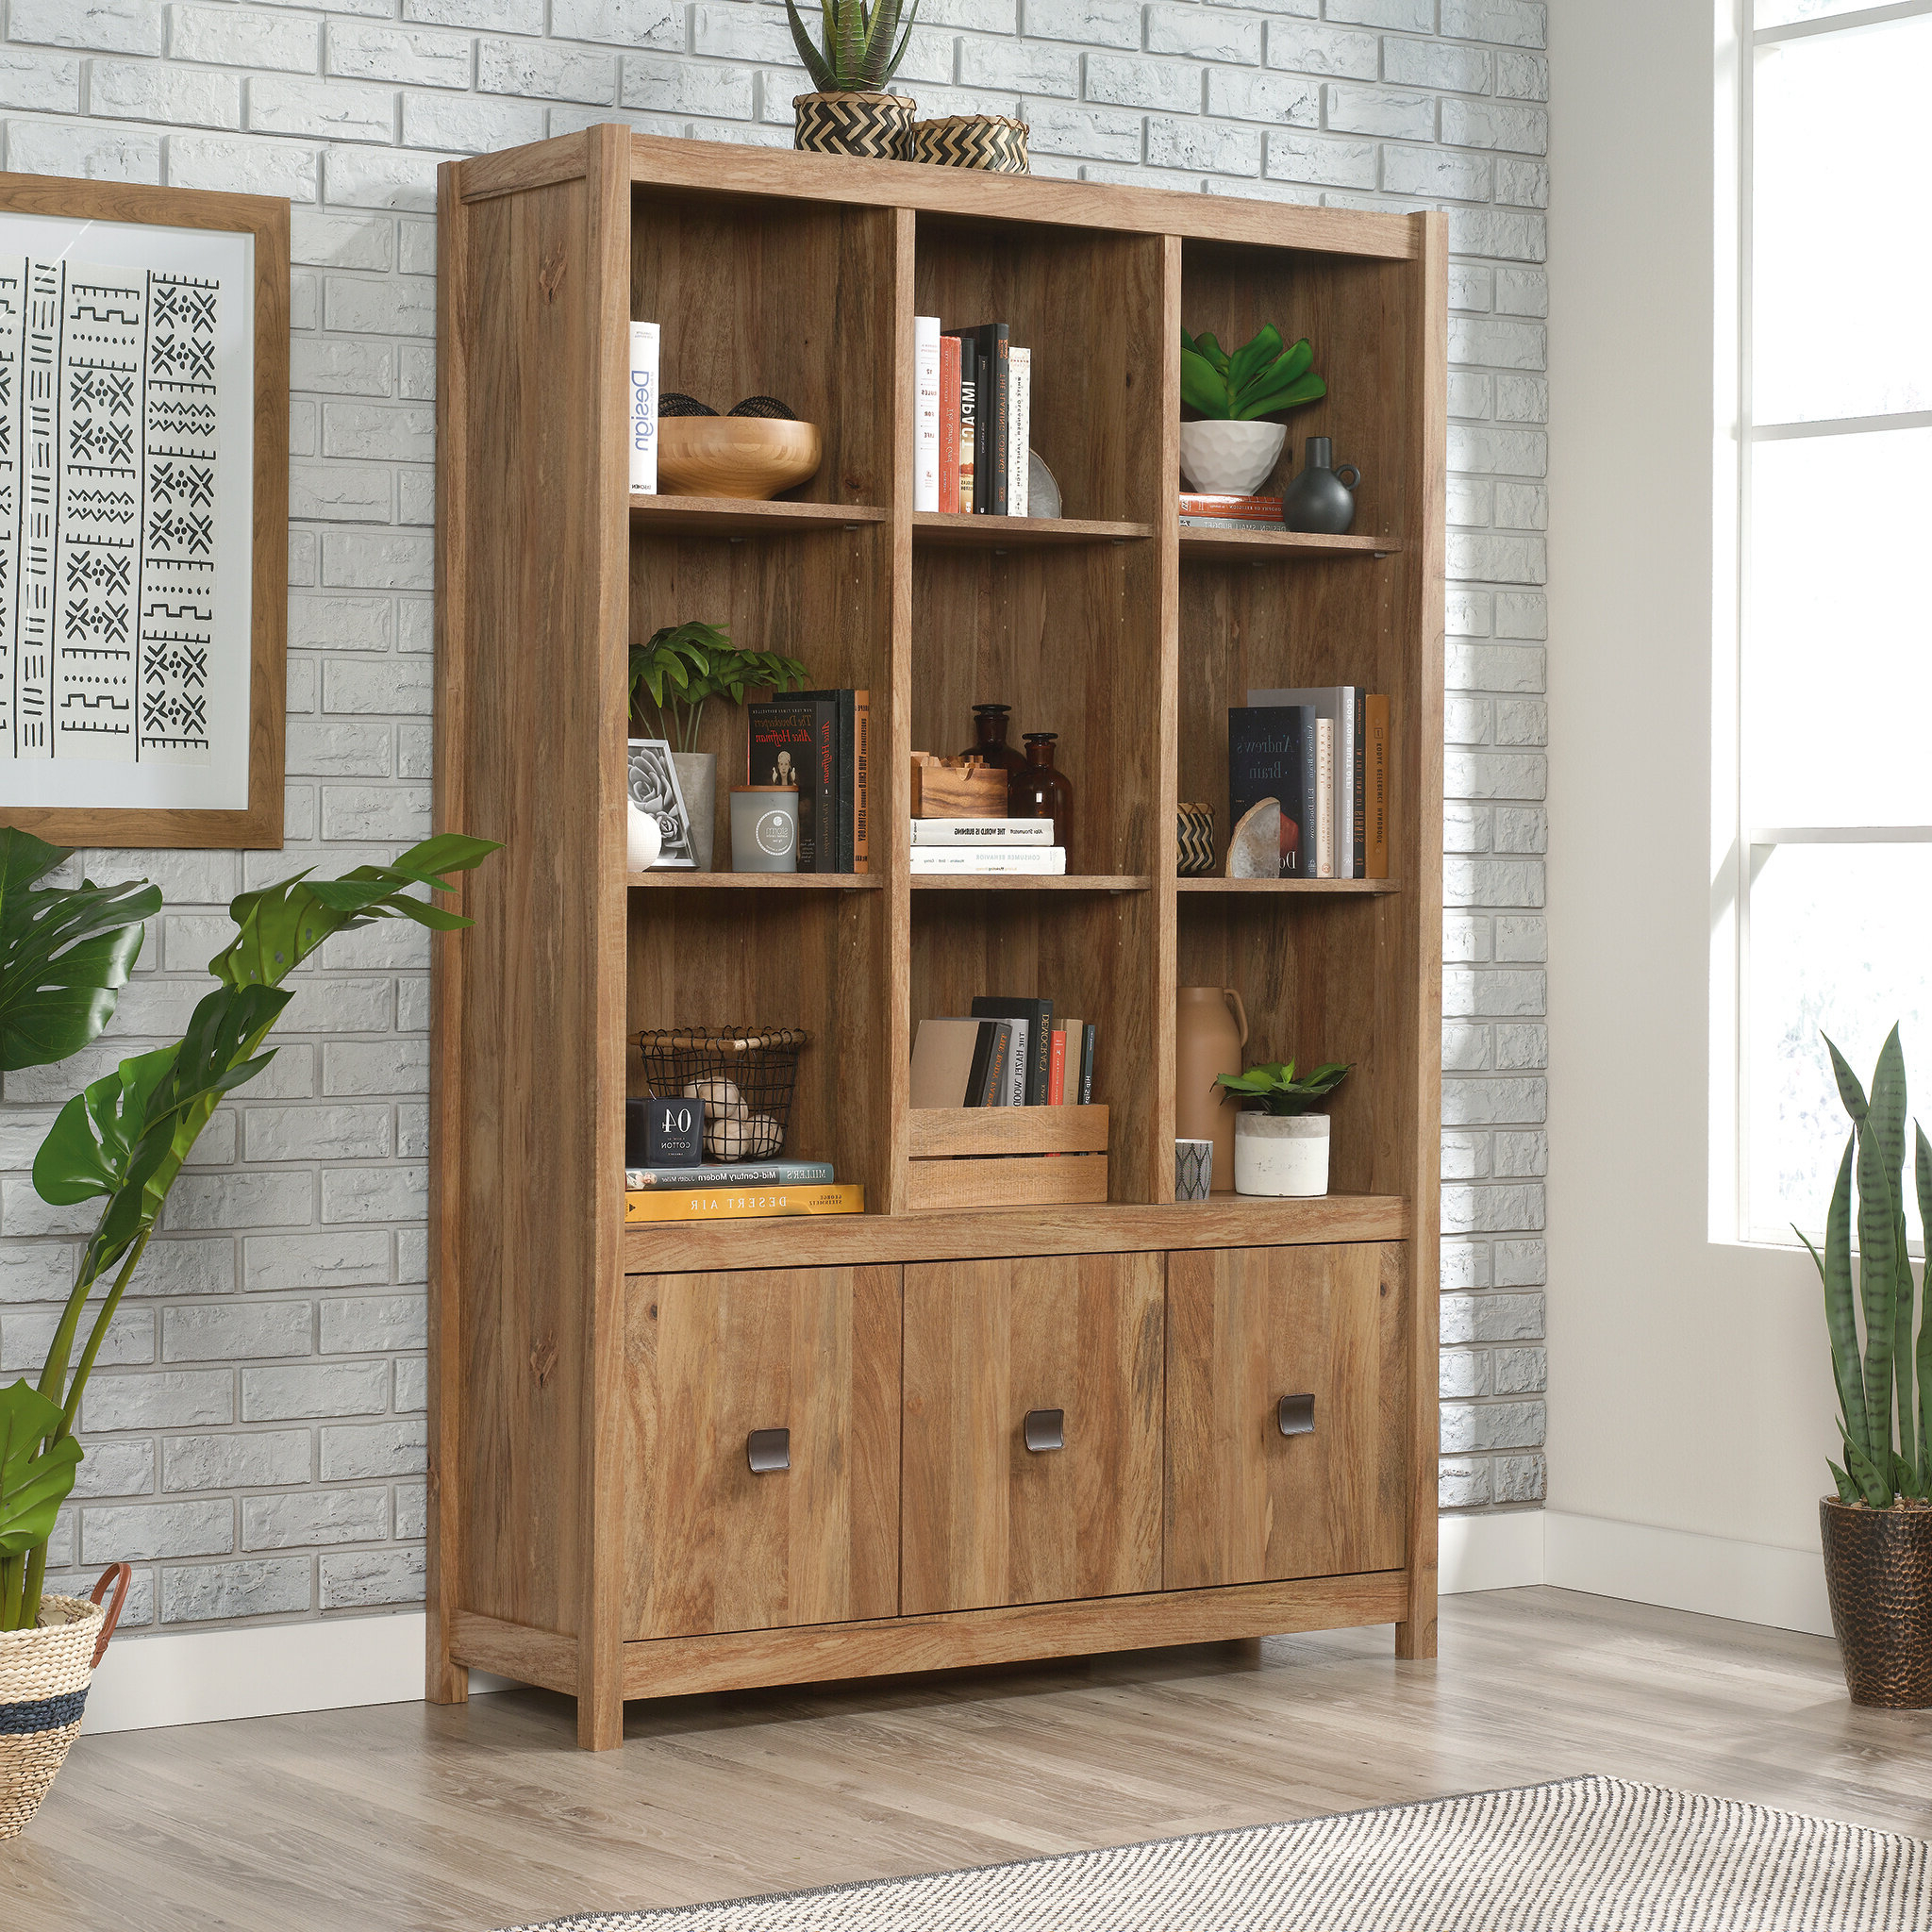 Most Recent Strauss Cube Unit Bookcase Pertaining To Strauss Cube Unit Bookcases (View 5 of 20)